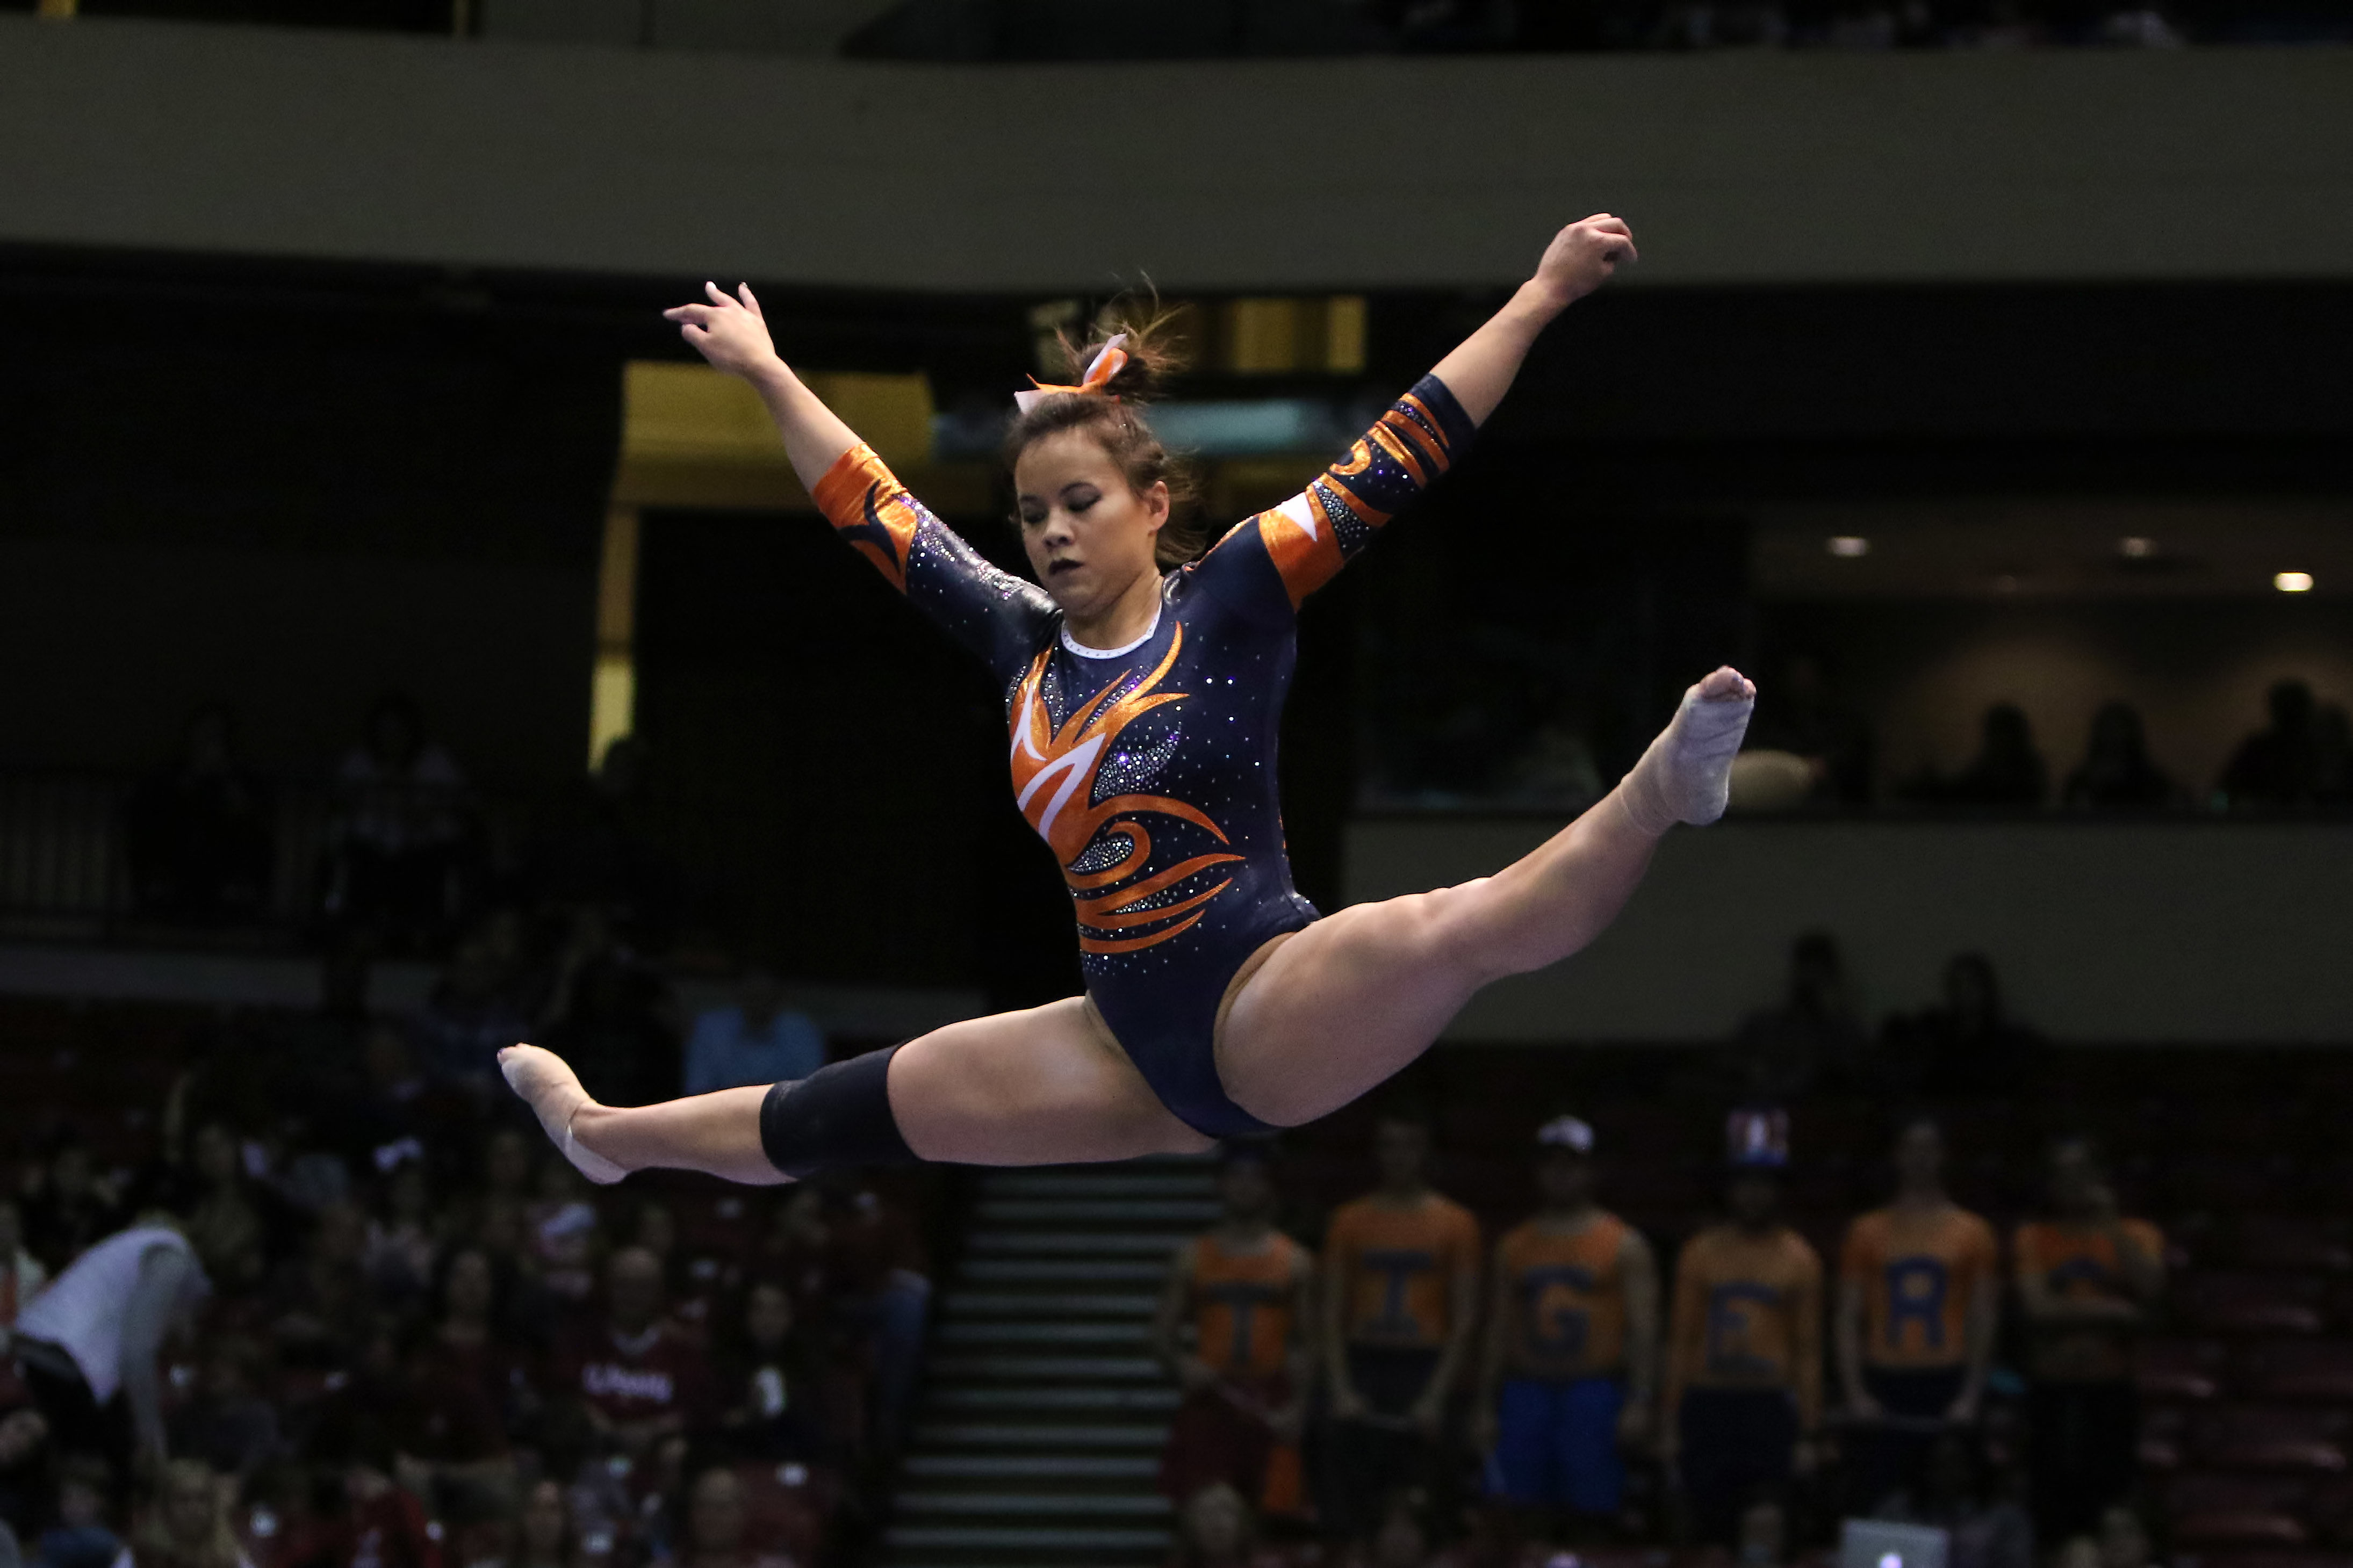 Auburn Gymnast Samantha Cerio Shows Resilience After Career-Ending Injury at NCAA Regionals